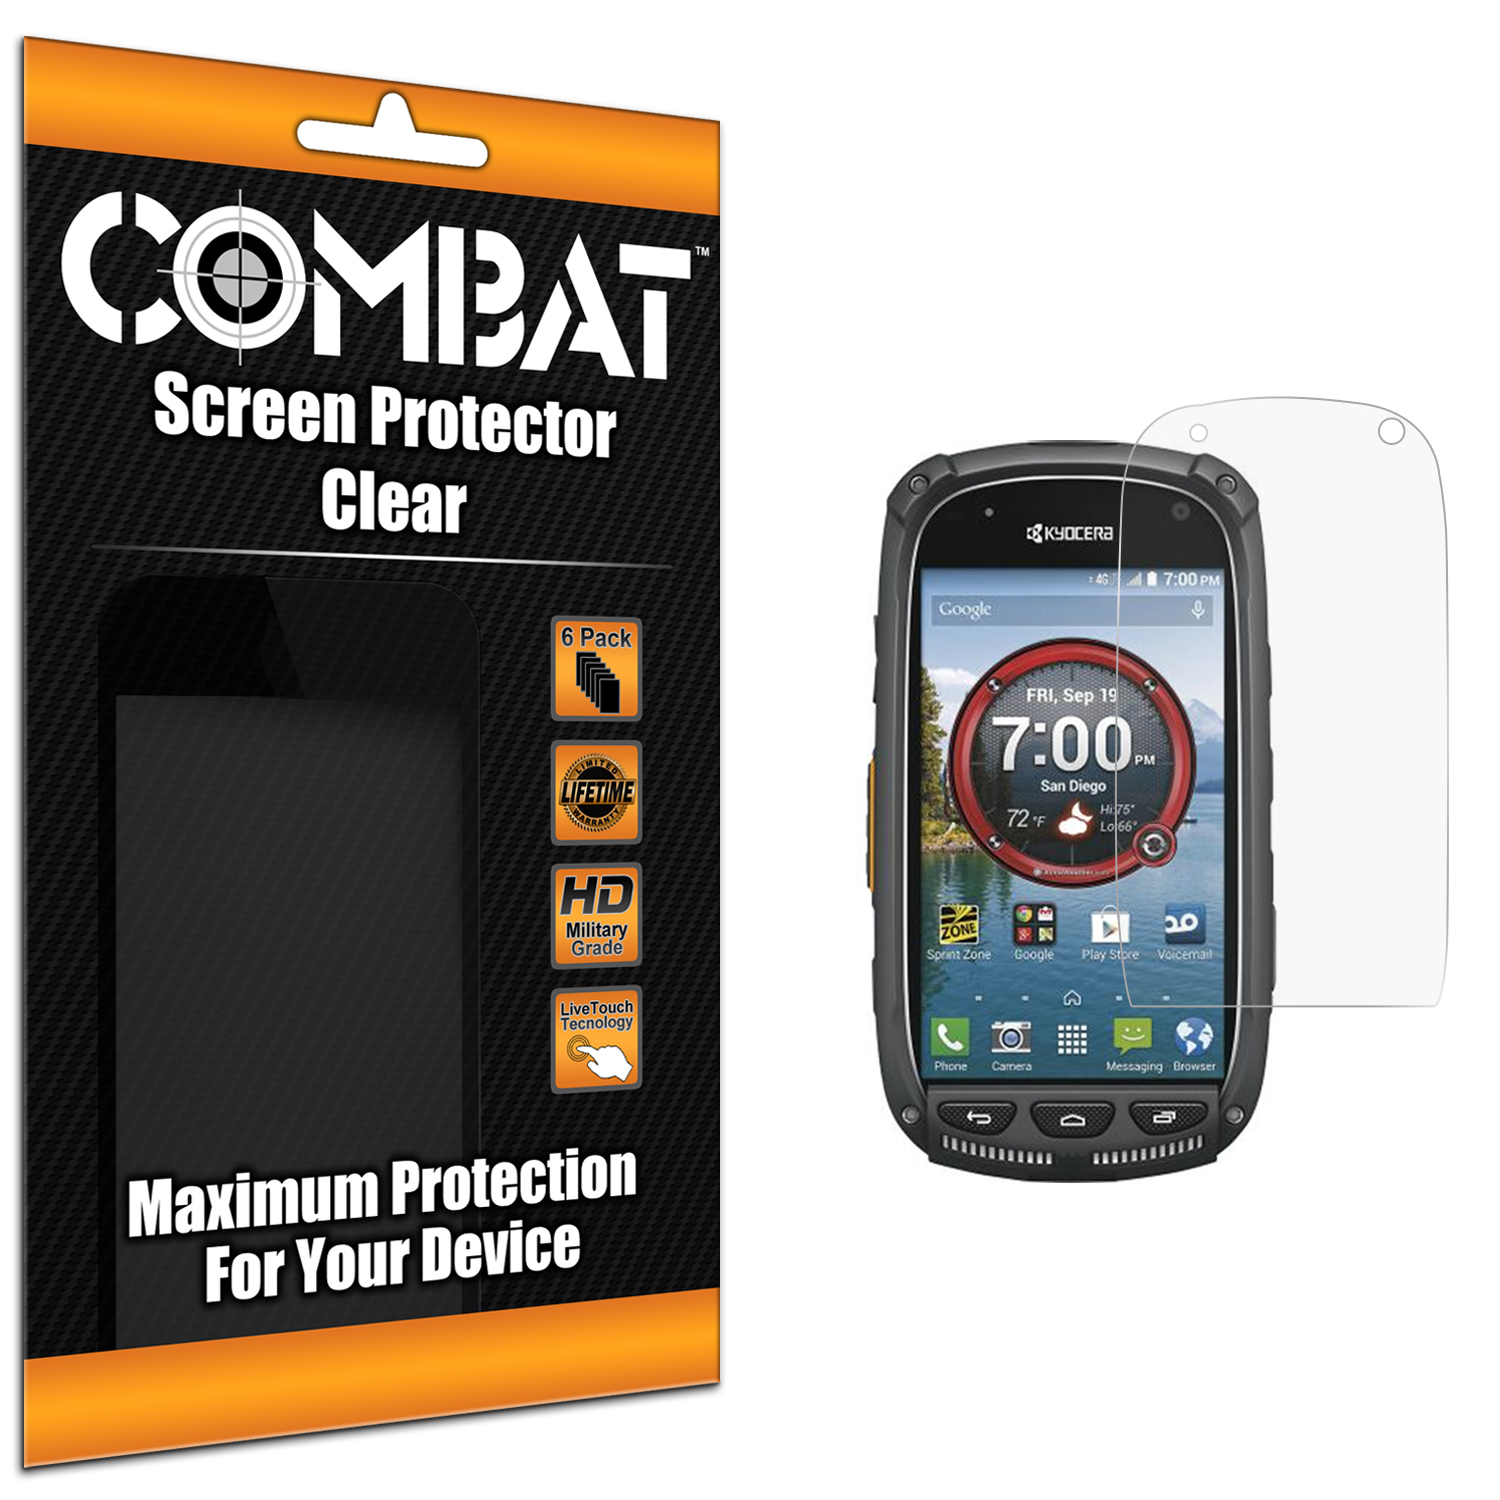 Kyocera Torque XT Clear Combat 6 Pack HD Clear Screen Protector